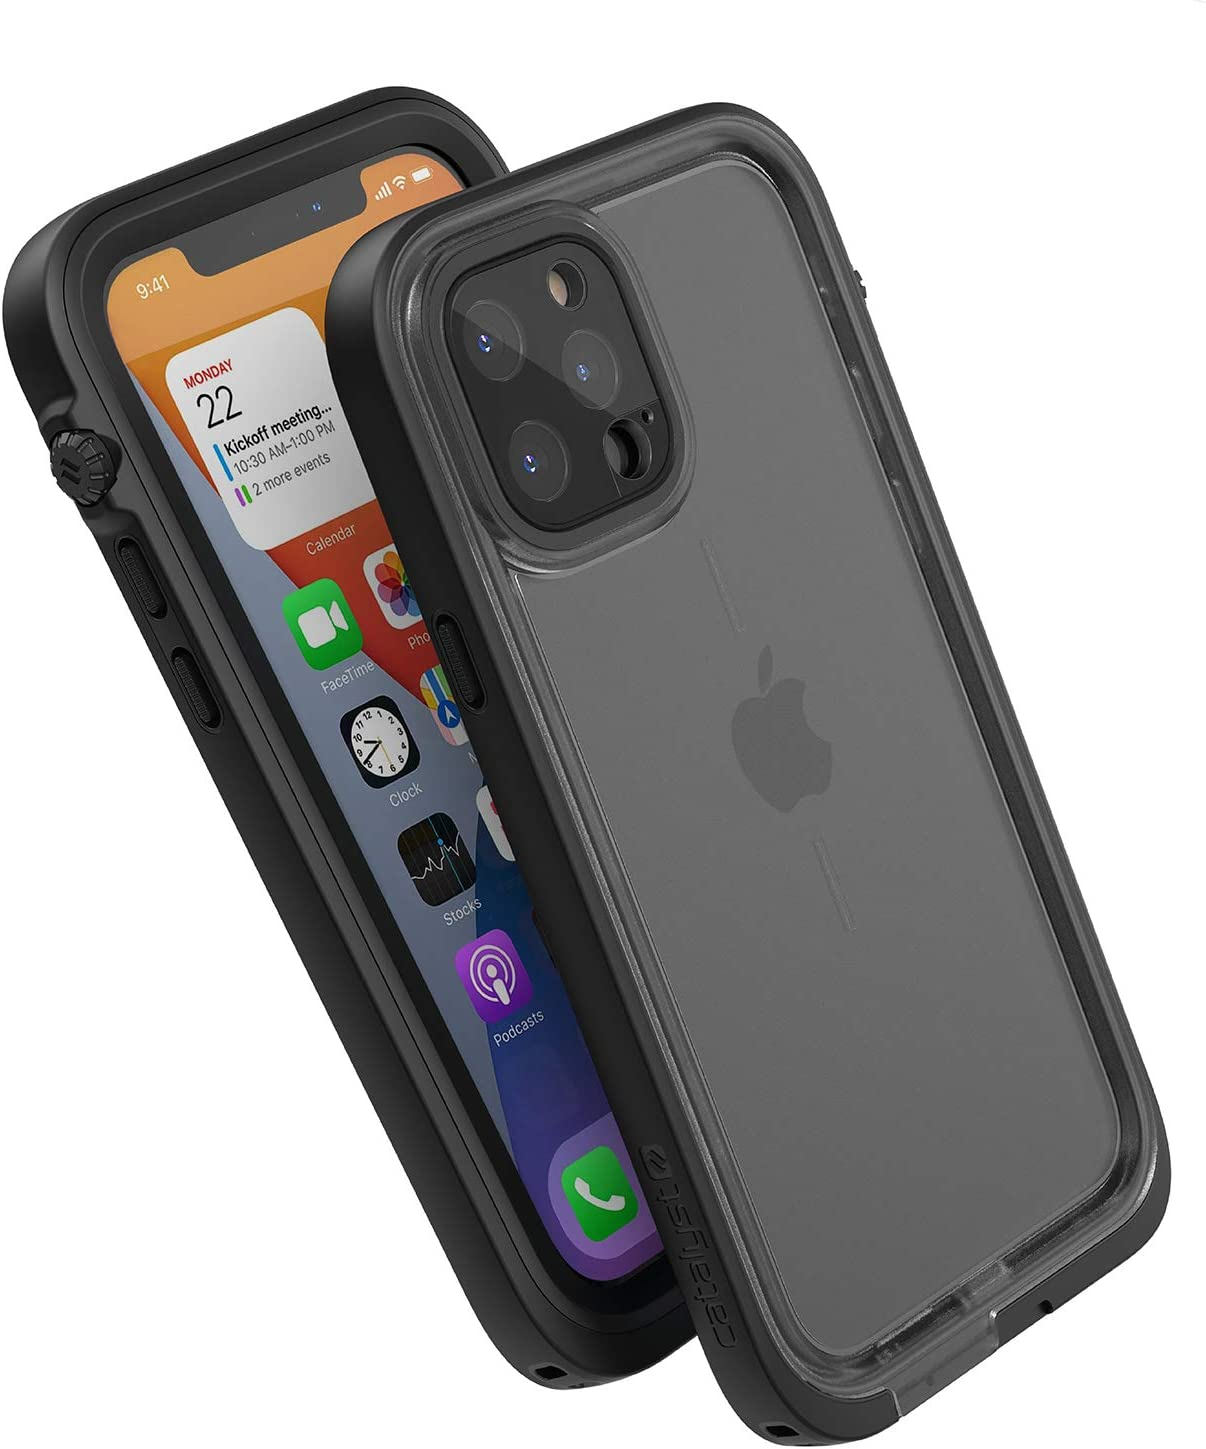 Catalyst 33ft Waterproof Case Designed for iPhone 12 Pro - Drop Proof 6.6ft, Clear Back, Compatible with Crux Accessories Cases - Stealth Black